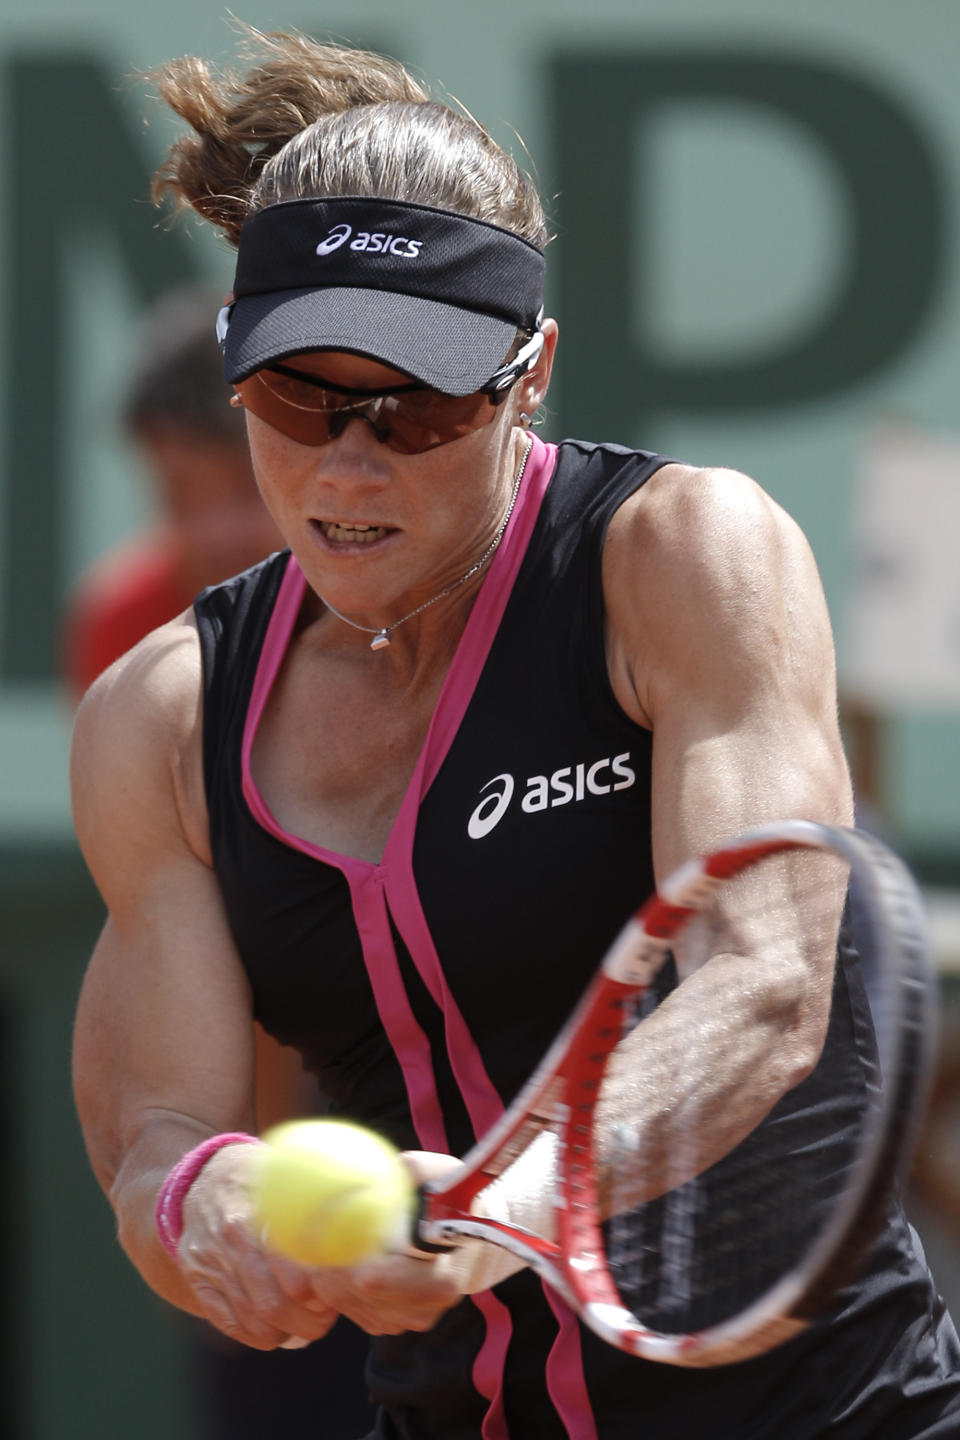 Australia's Samantha Stosur returns the ball to Slovakia's Dominika Cibulkova during their quarterfinal match in the French Open tennis tournament at the Roland Garros stadium in Paris, Tuesday, June 5, 2012. Stosur won 6-4, 6-1. (AP Photo/Michel Spingler)